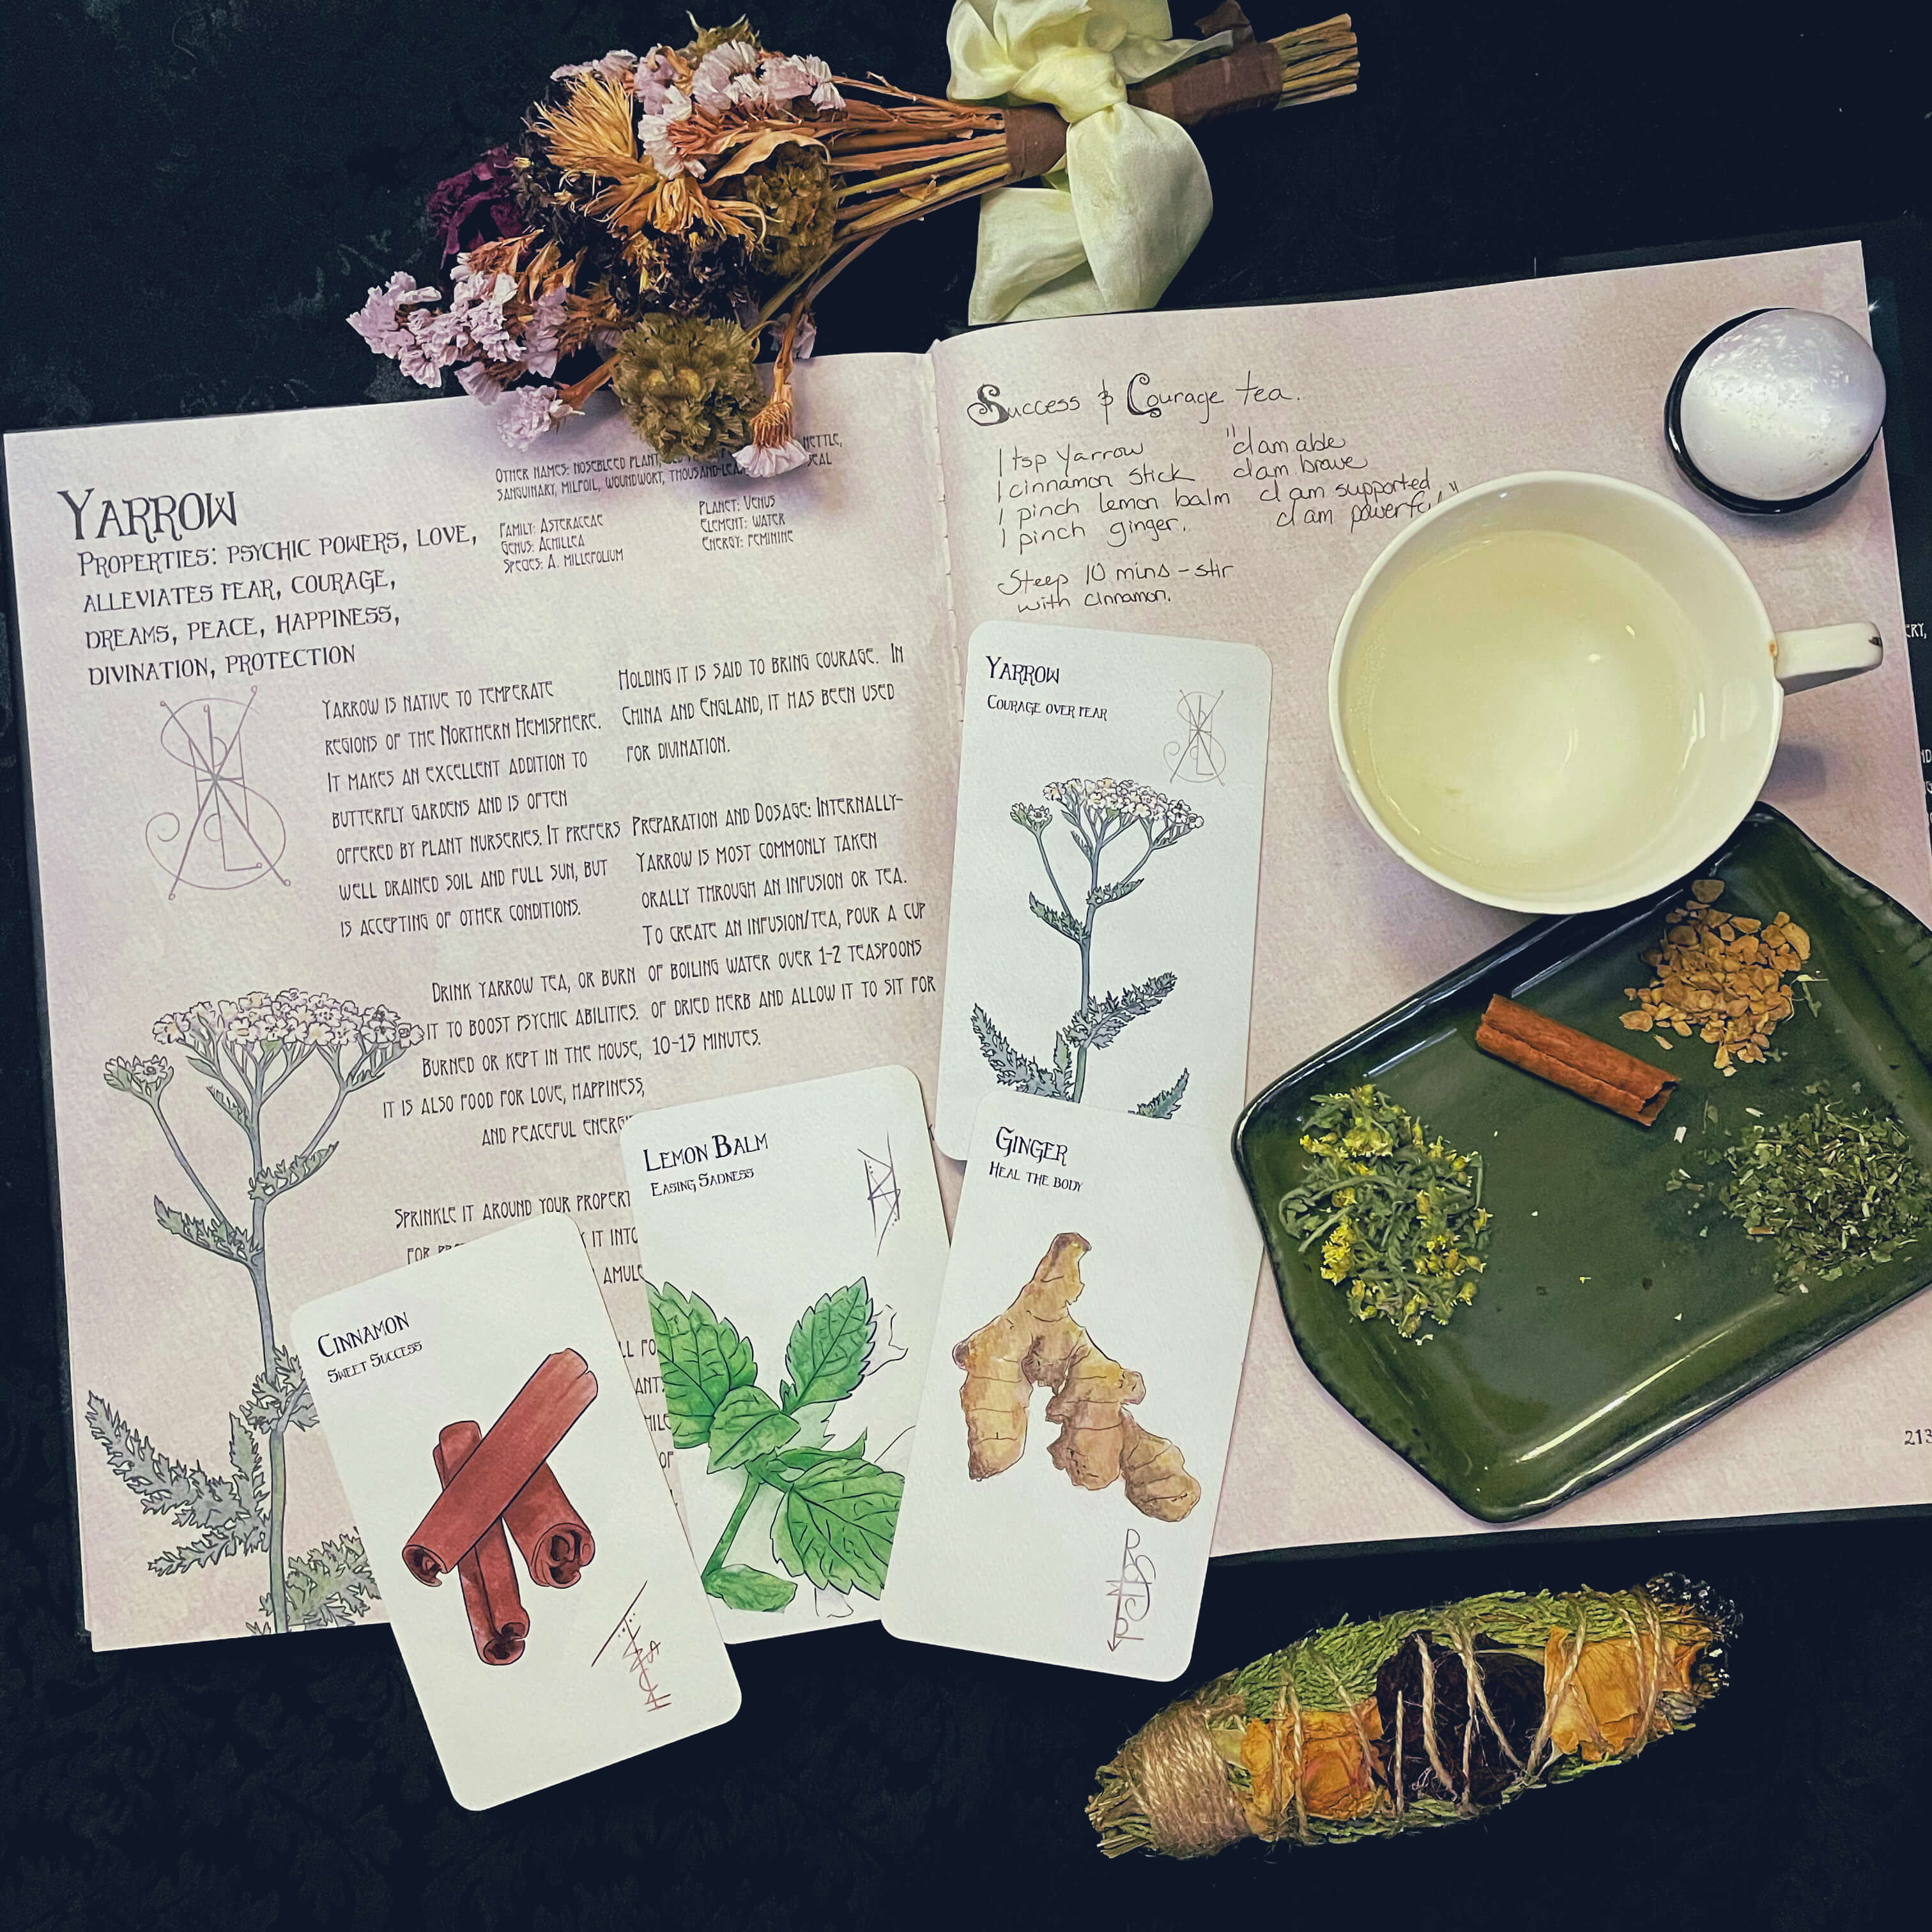 The Likely Herbarium, The Likely Oracle, wolf moon tea